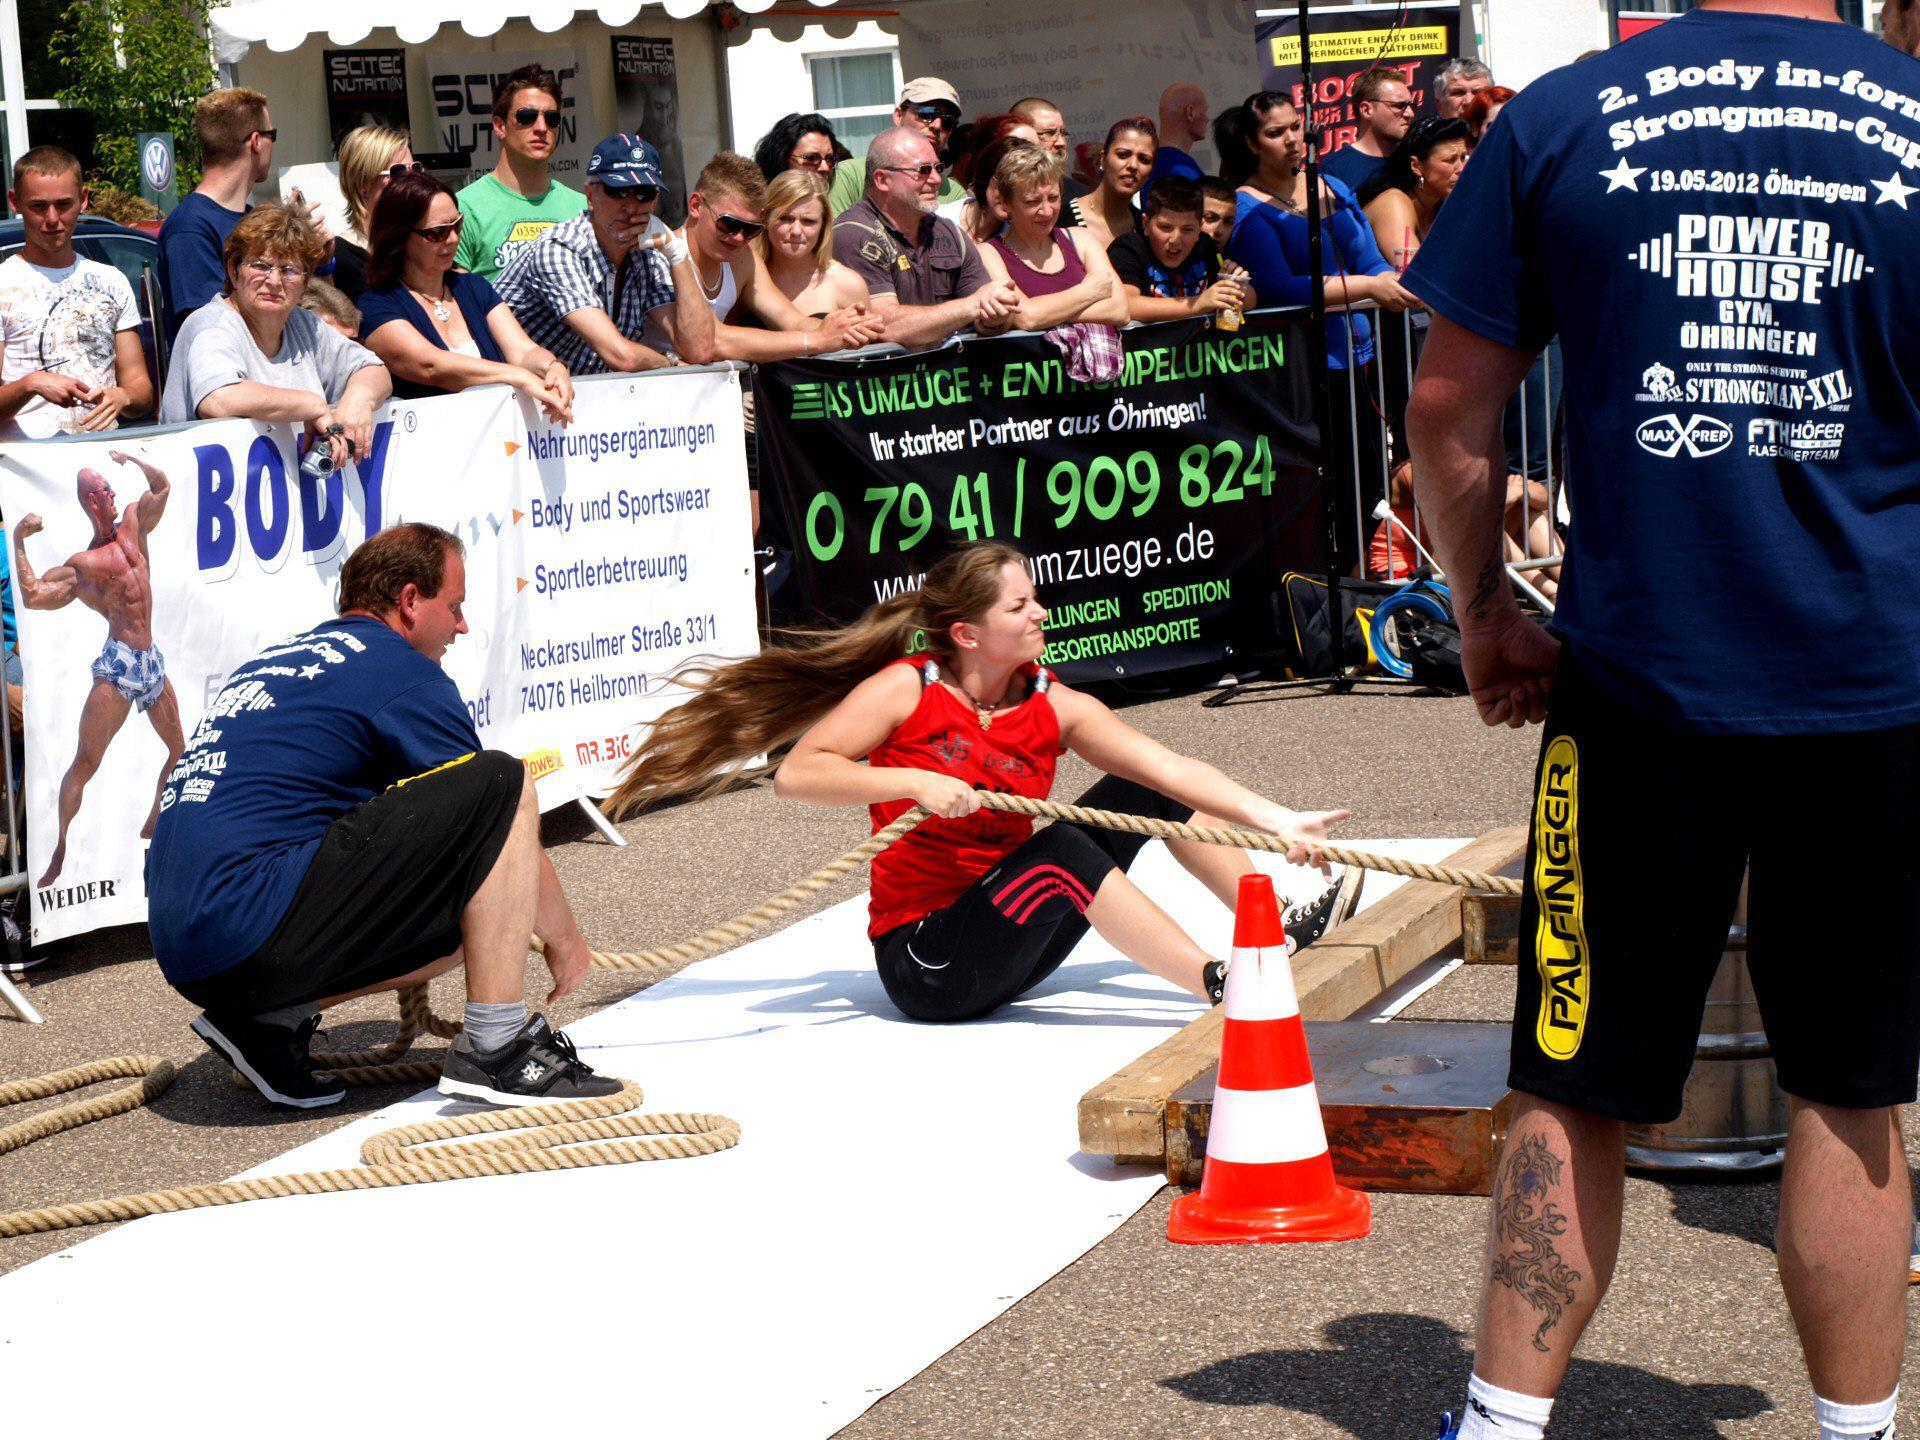 isa truckpull germany strongwoman.jpg